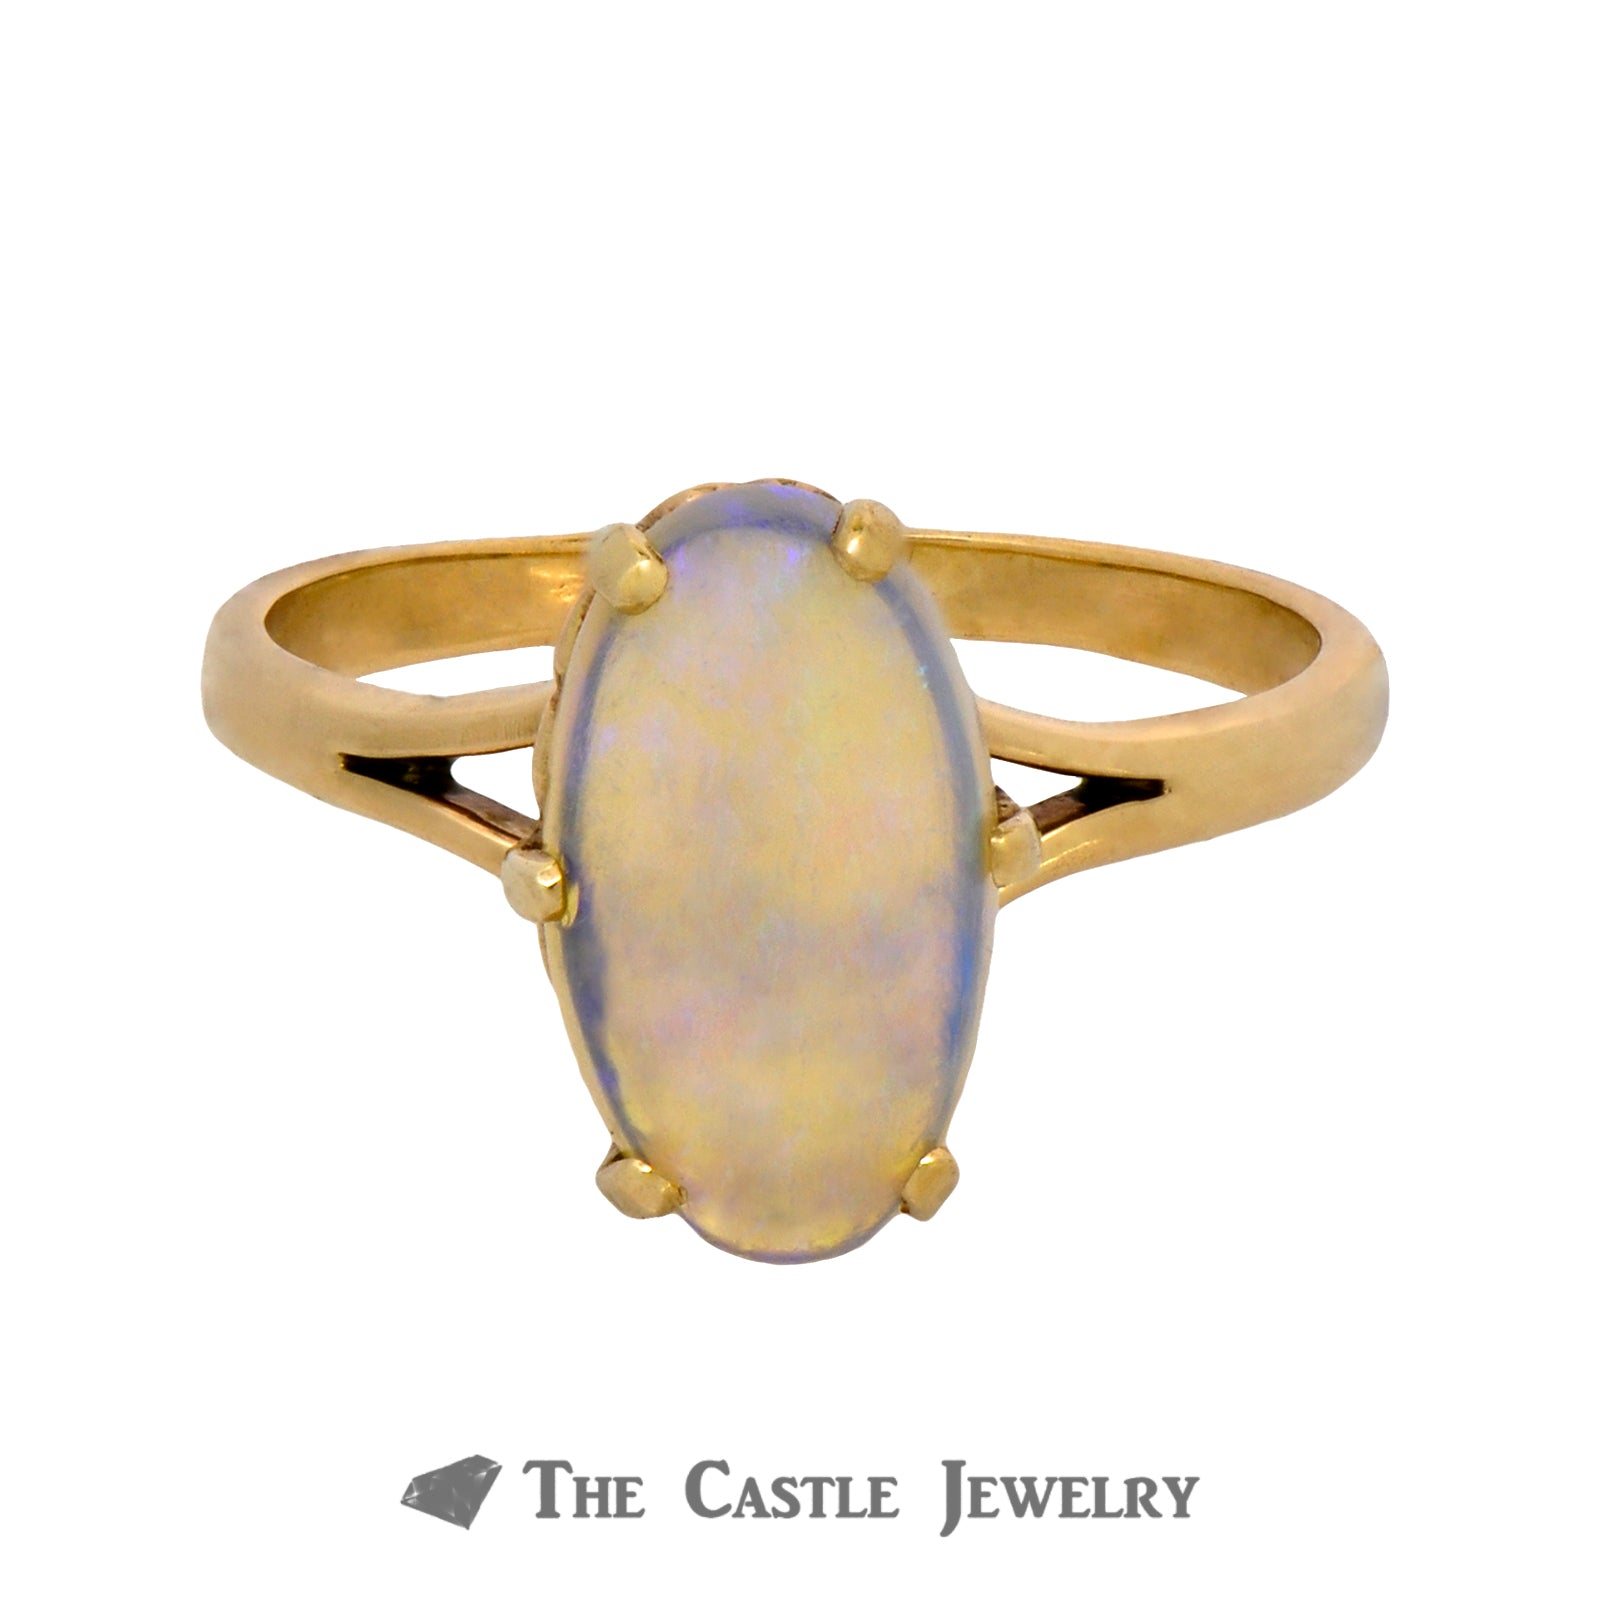 Oval Jelly Opal Ring in Six Prong Mounting Crafted in 10K Yellow Gold